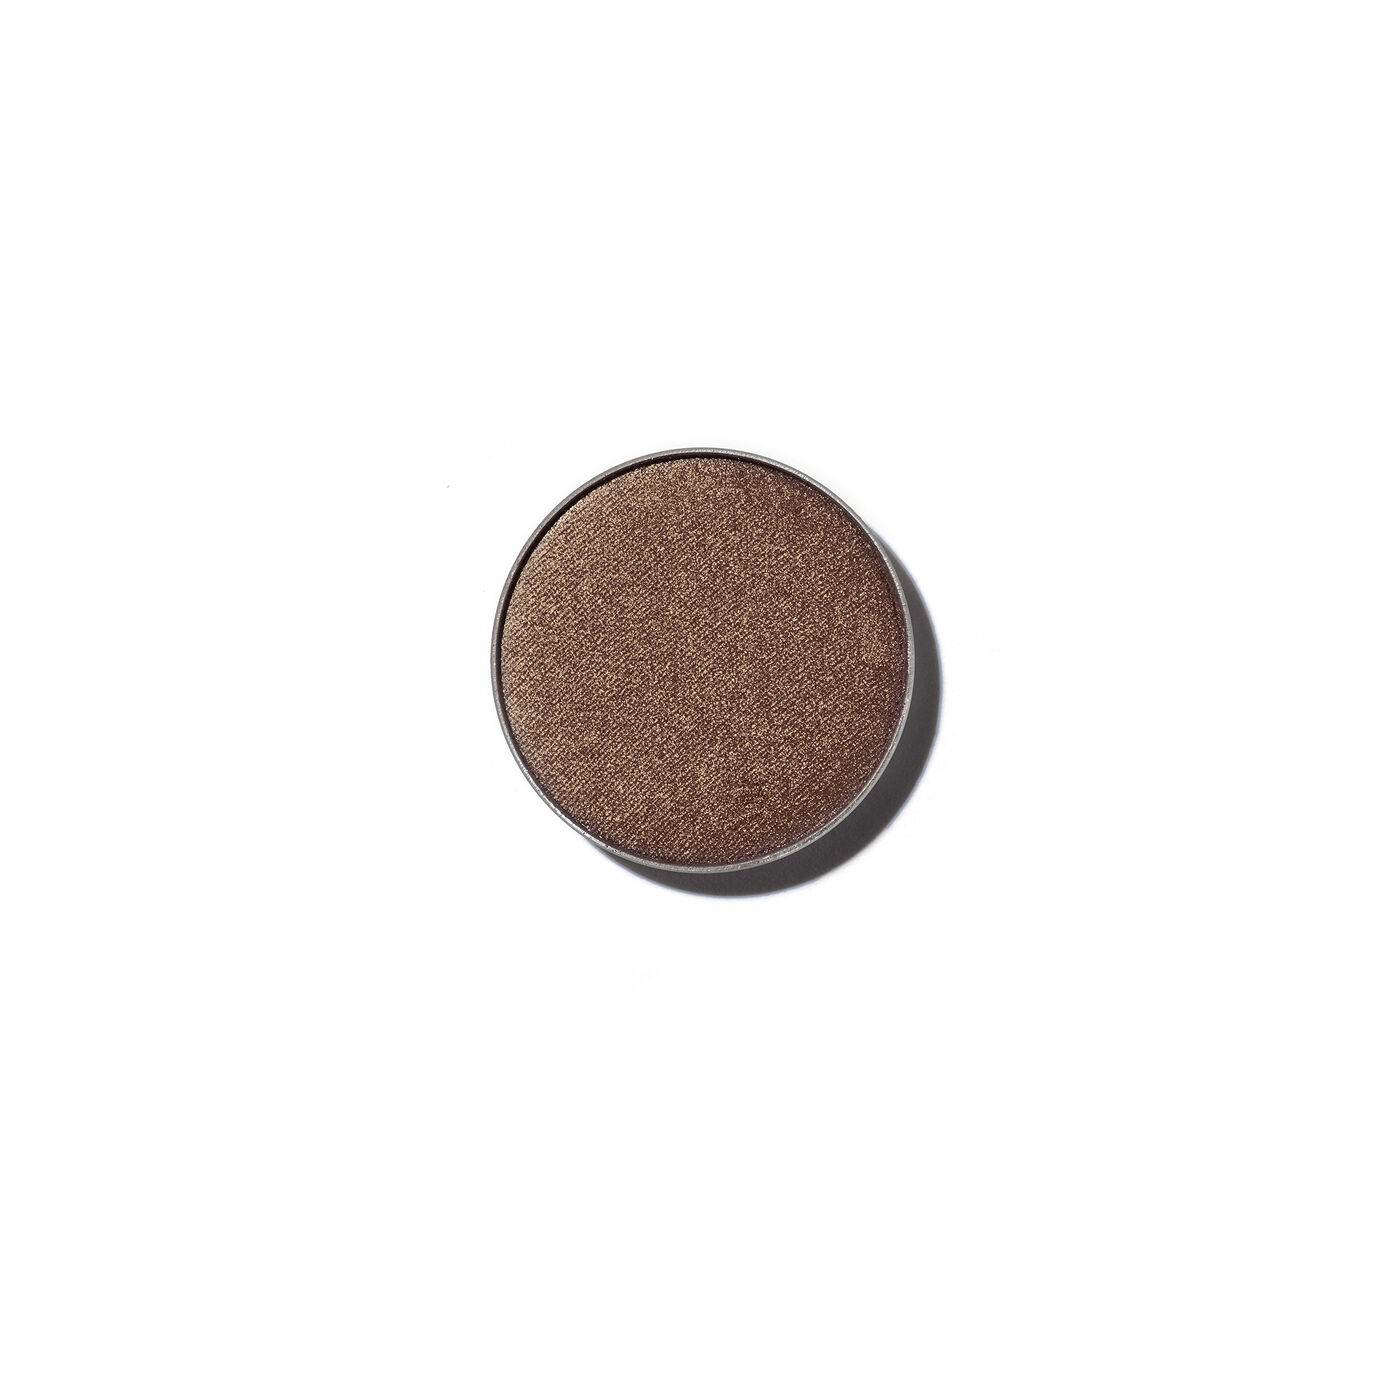 Eyeshadow Singles - Brownie